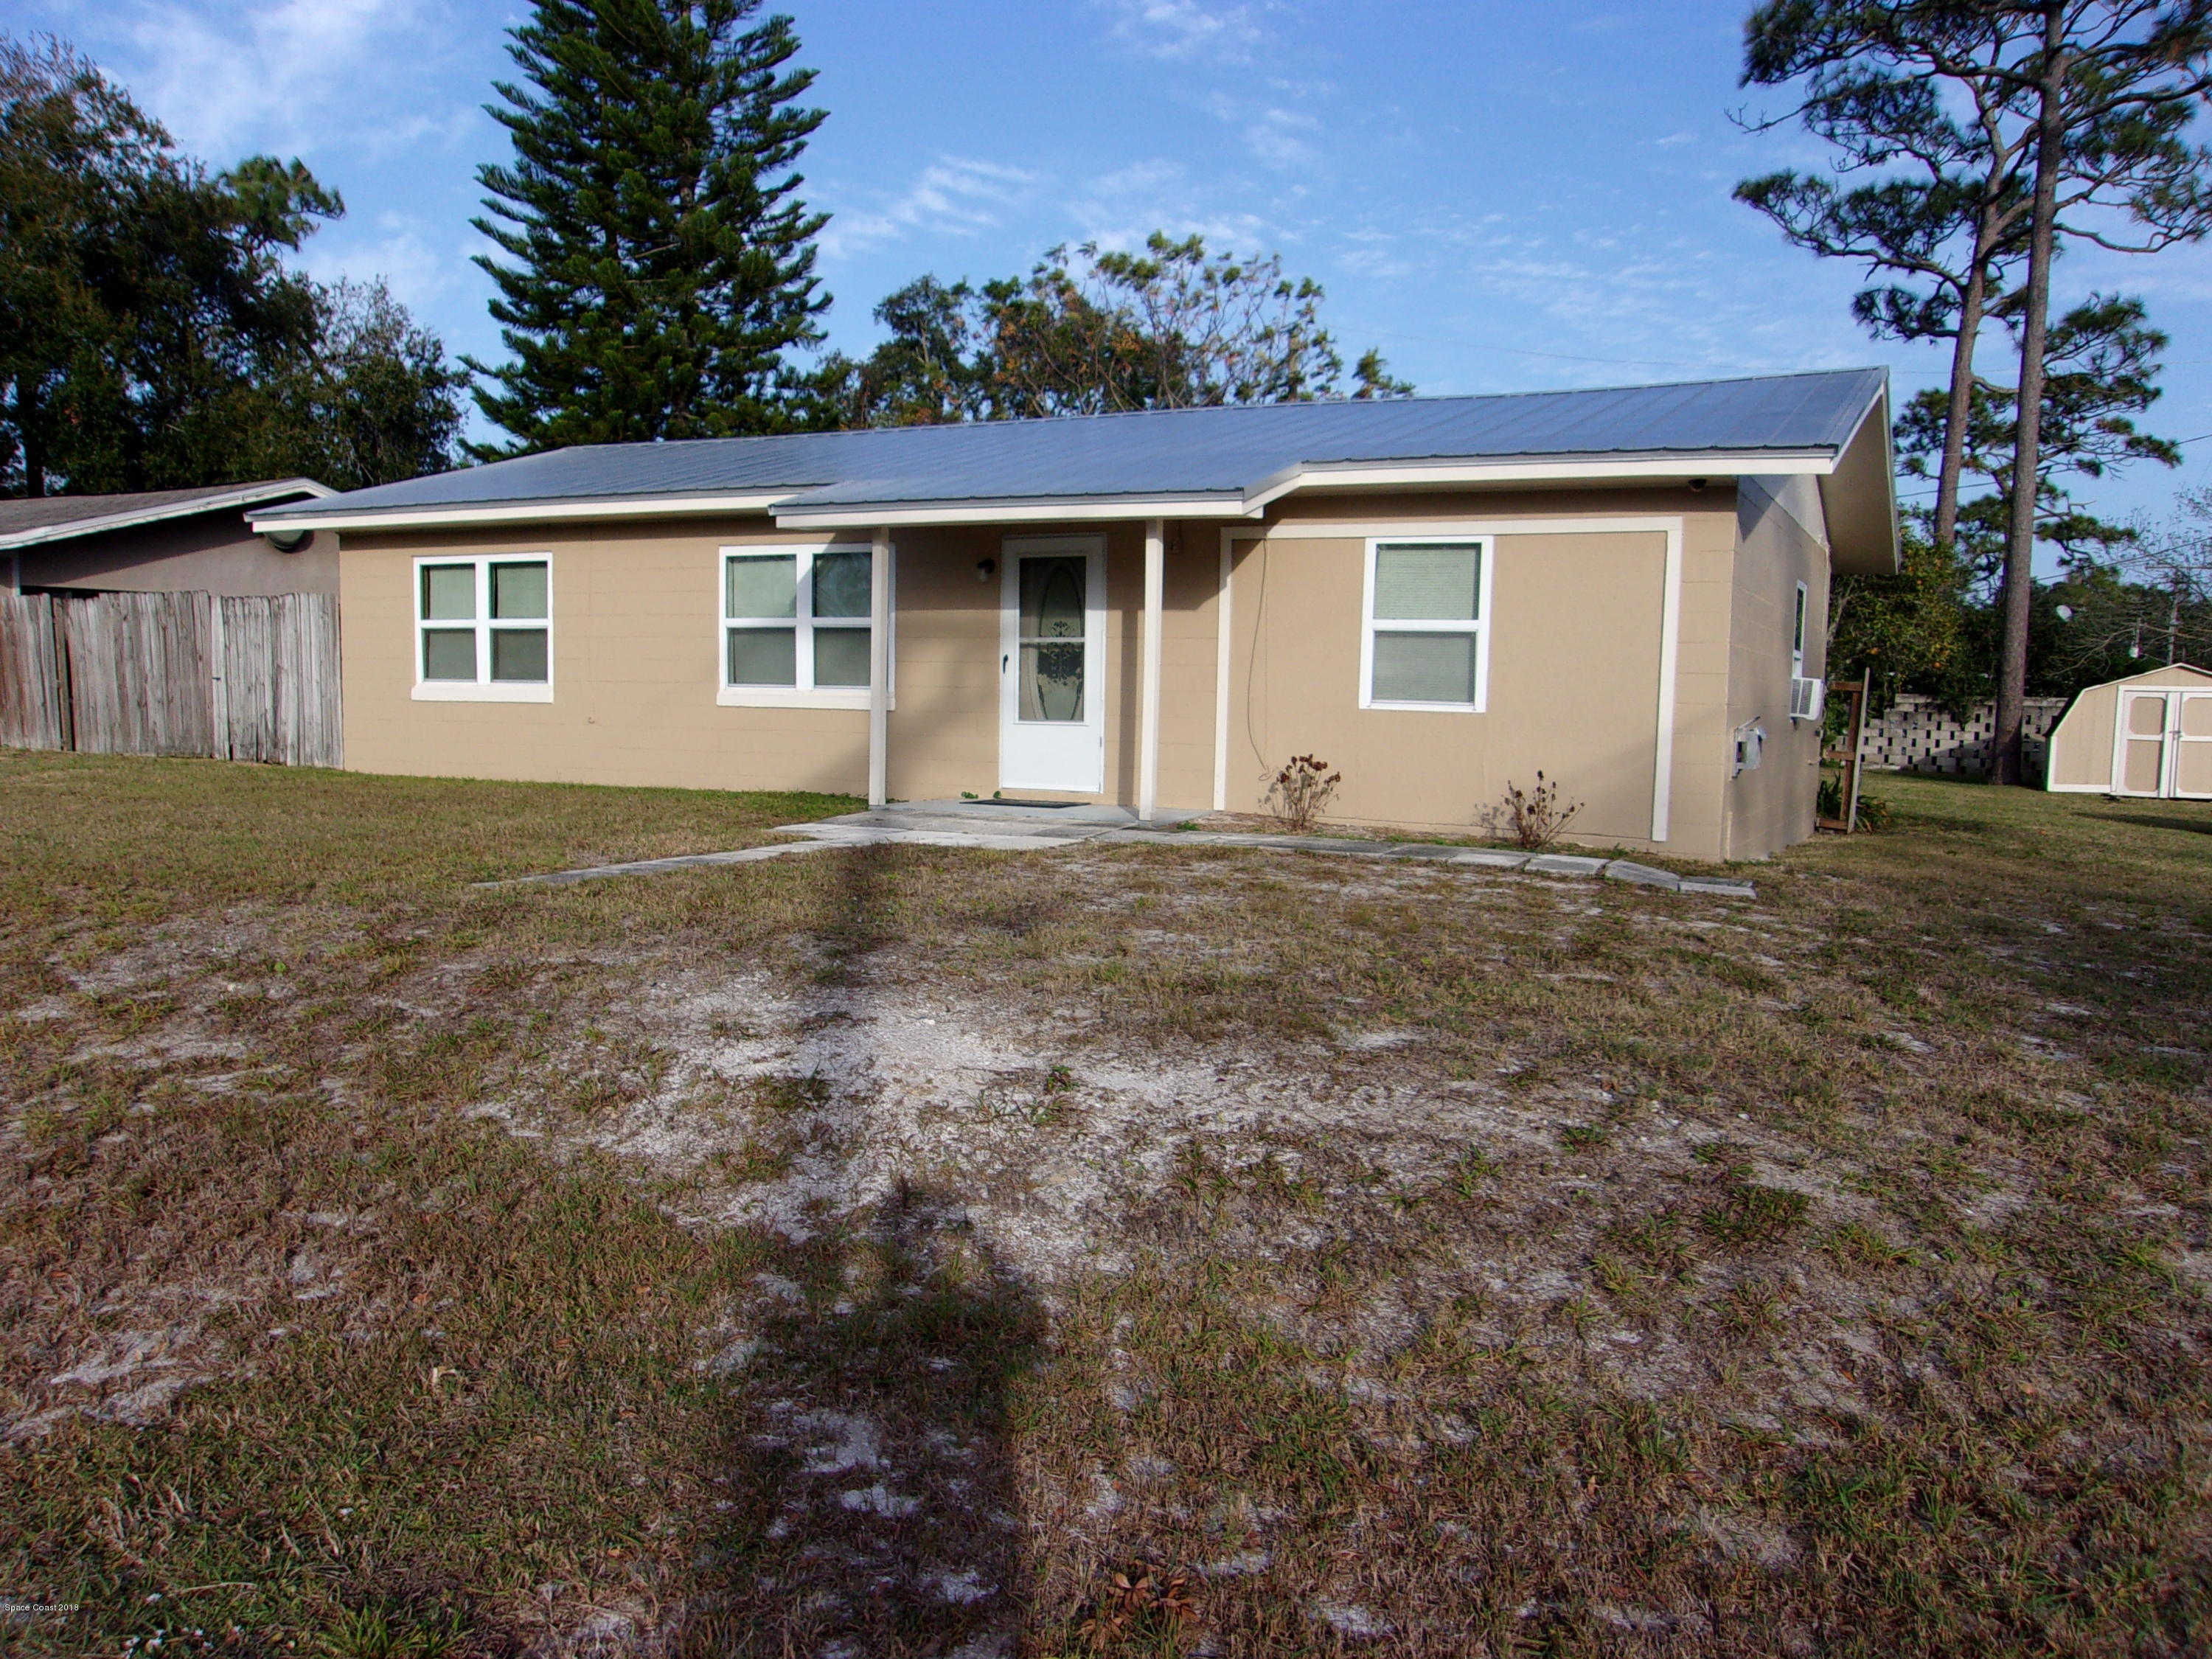 435 Highland Terrace, Titusville, FL 32796 now has a new price of $129,000!